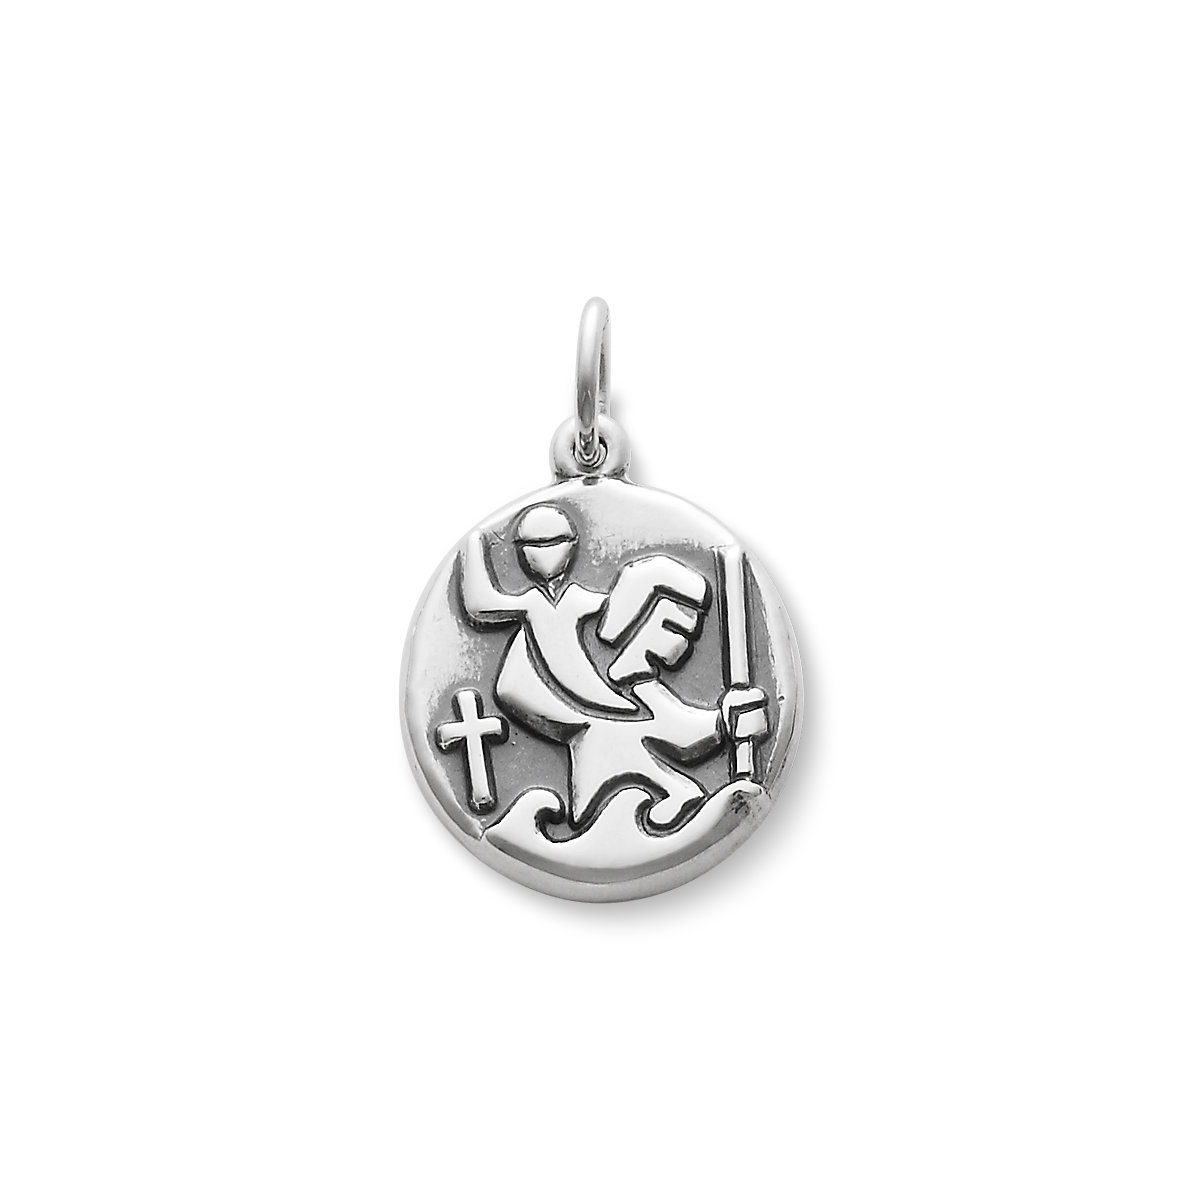 Round st christopher medal charm james avery st christopher medal charm share aloadofball Gallery